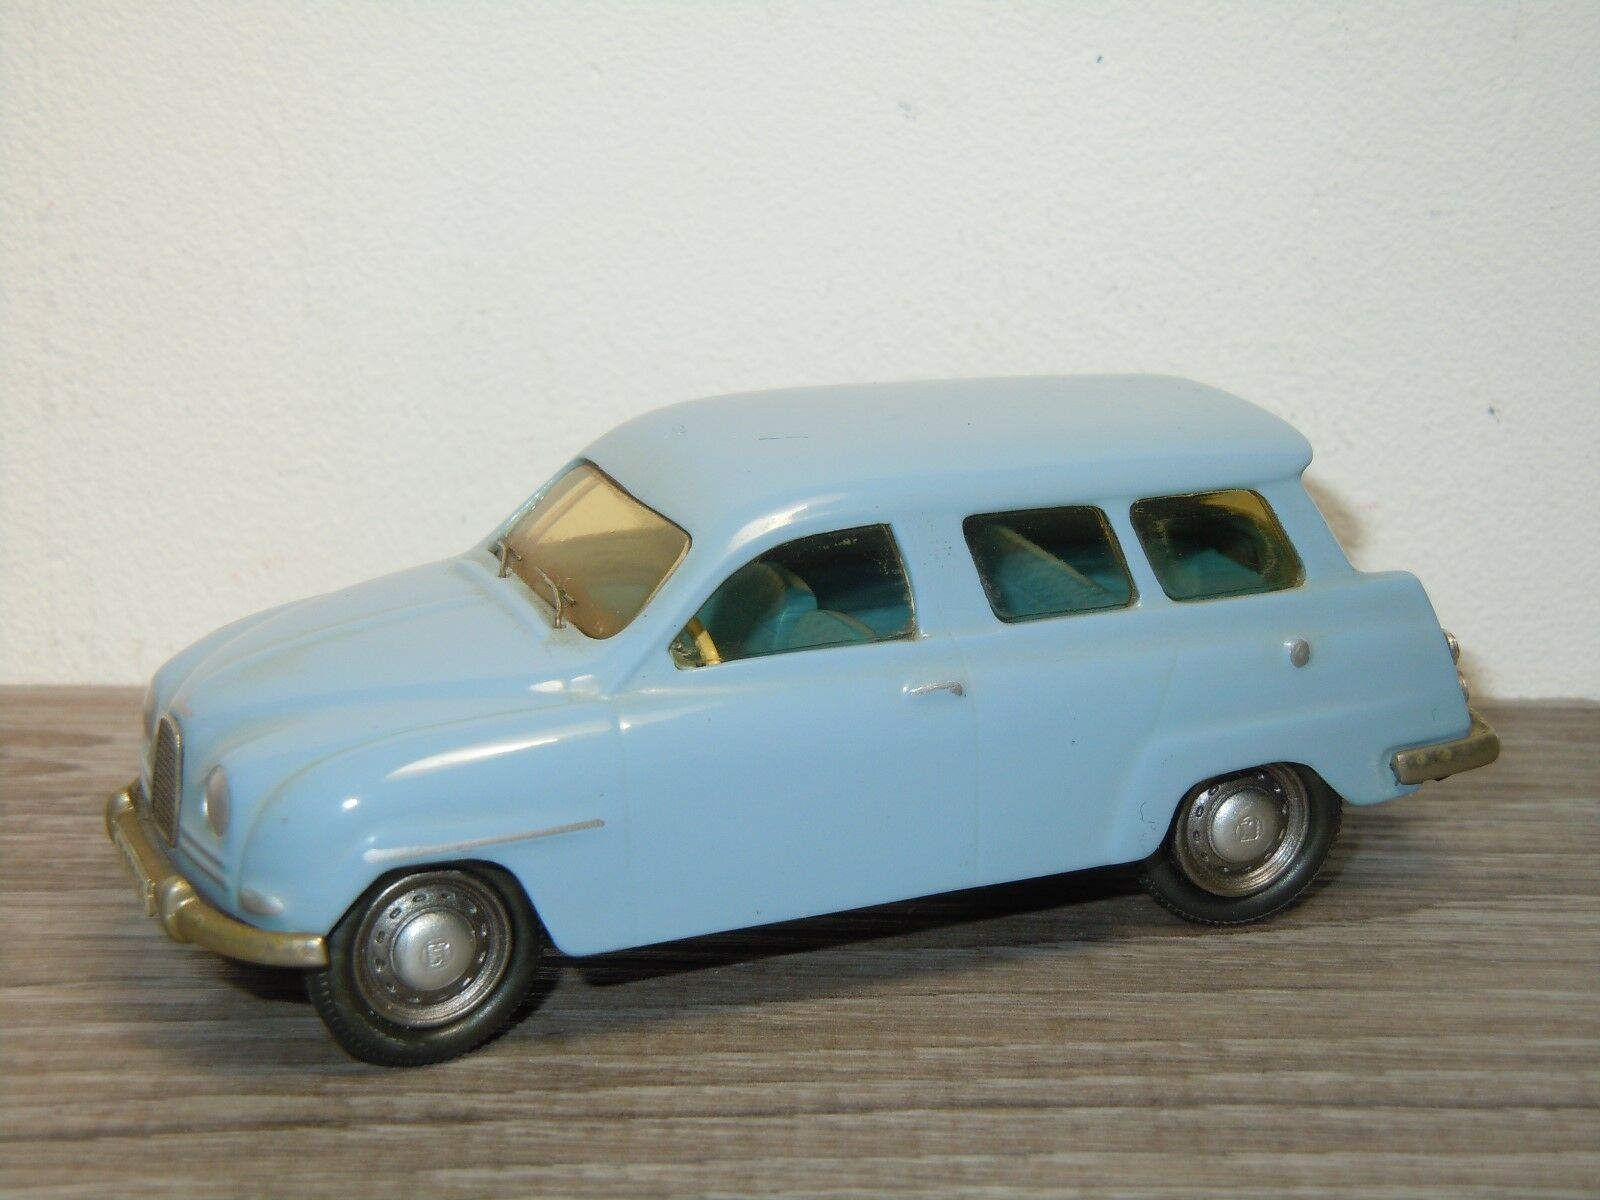 Saab 95 Estate 1961 - Somerville 123 England 1:43 *33591